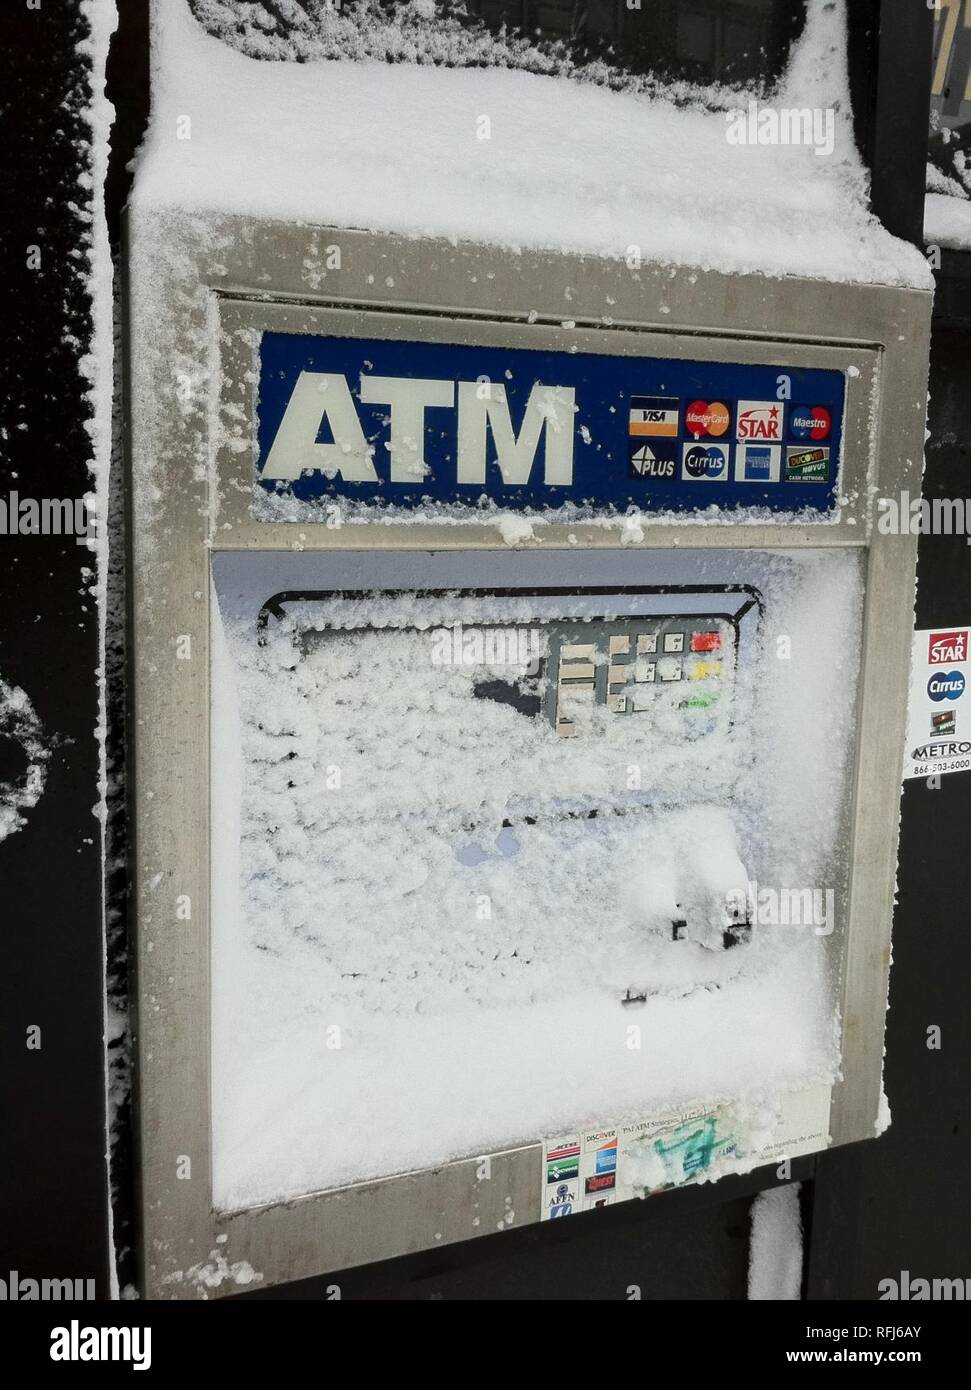 ATM Snowed Out Chicago Feb 2 2011 storm. - Stock Image